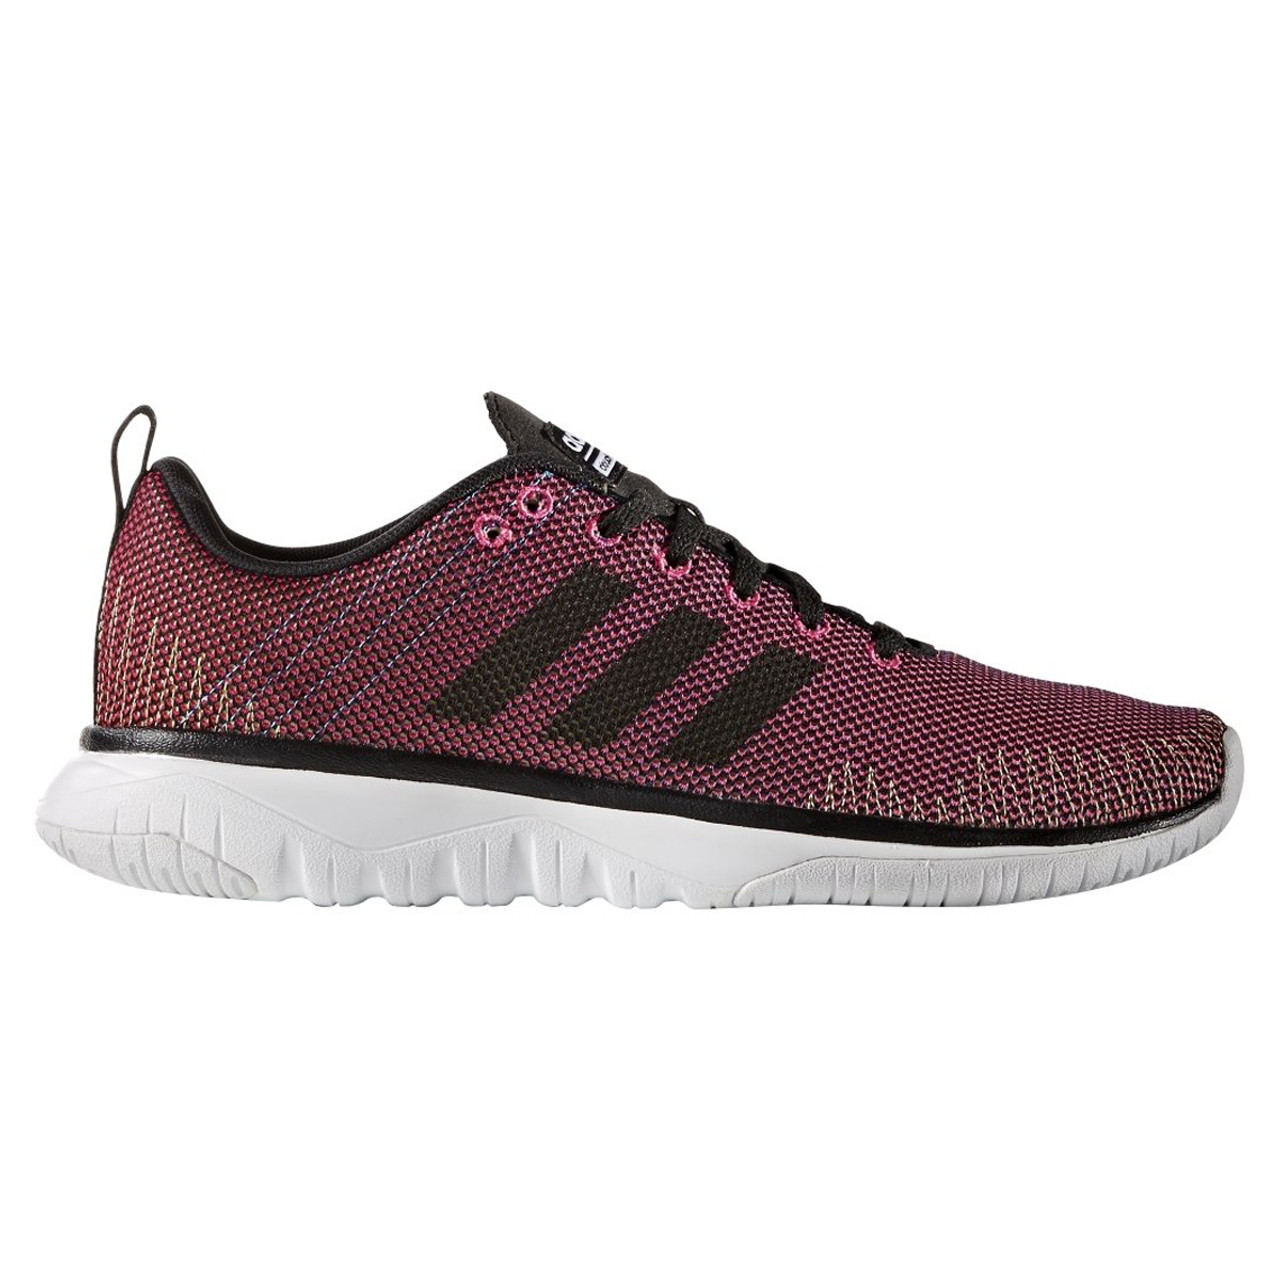 Buy Adidas Cloudfoam Super Skate Only $60 Today | RunRepeat